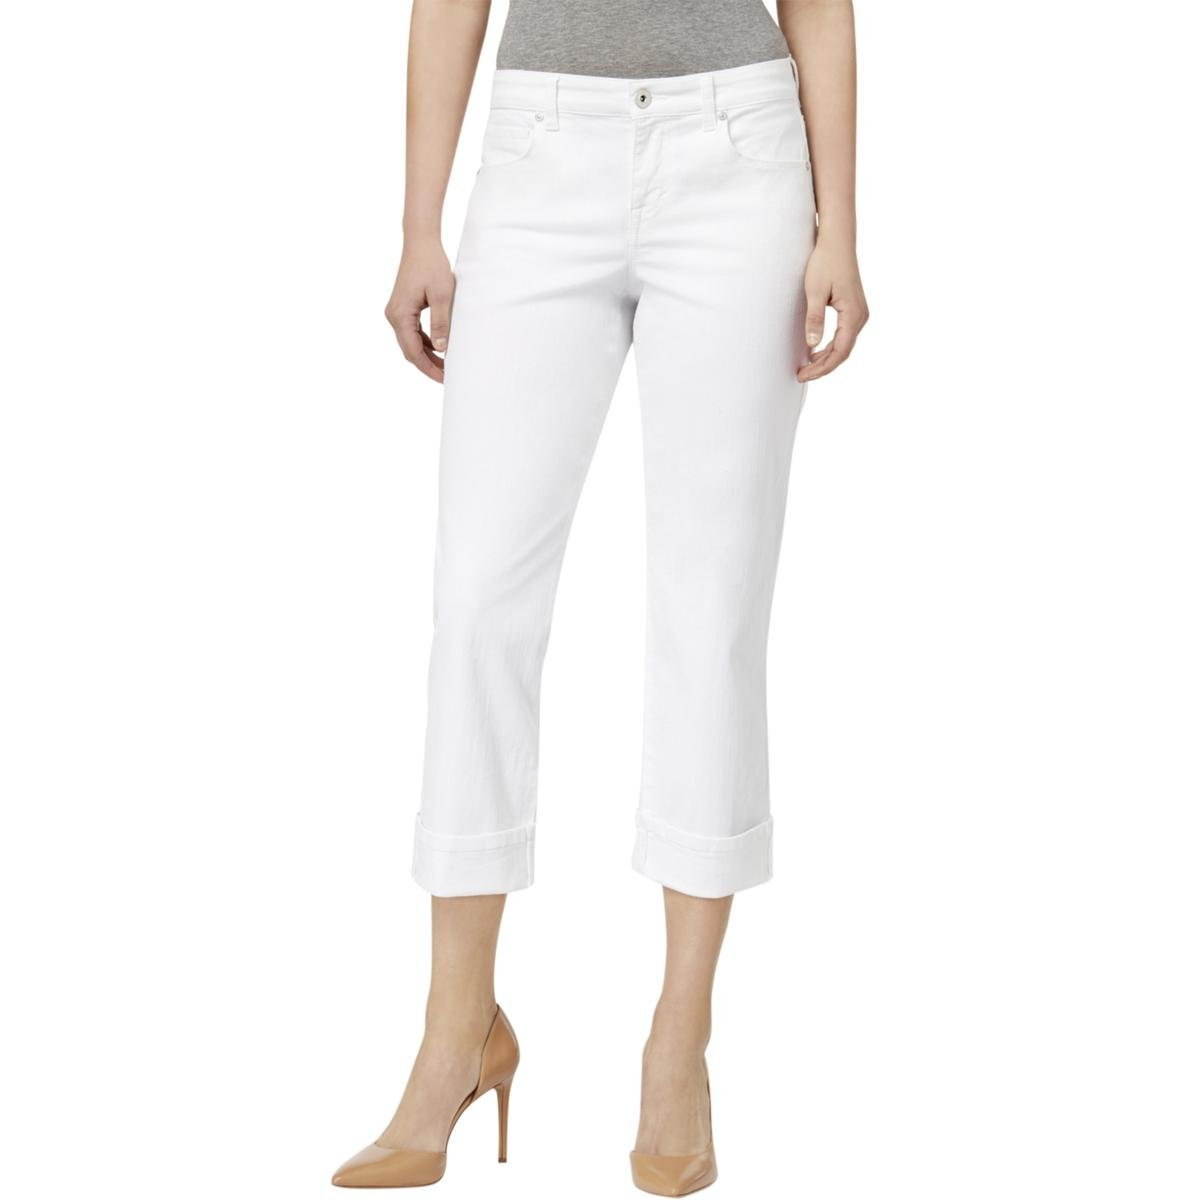 Style & Co. Womens Curvy Fit Mid-Rise Capri Jeans White 8